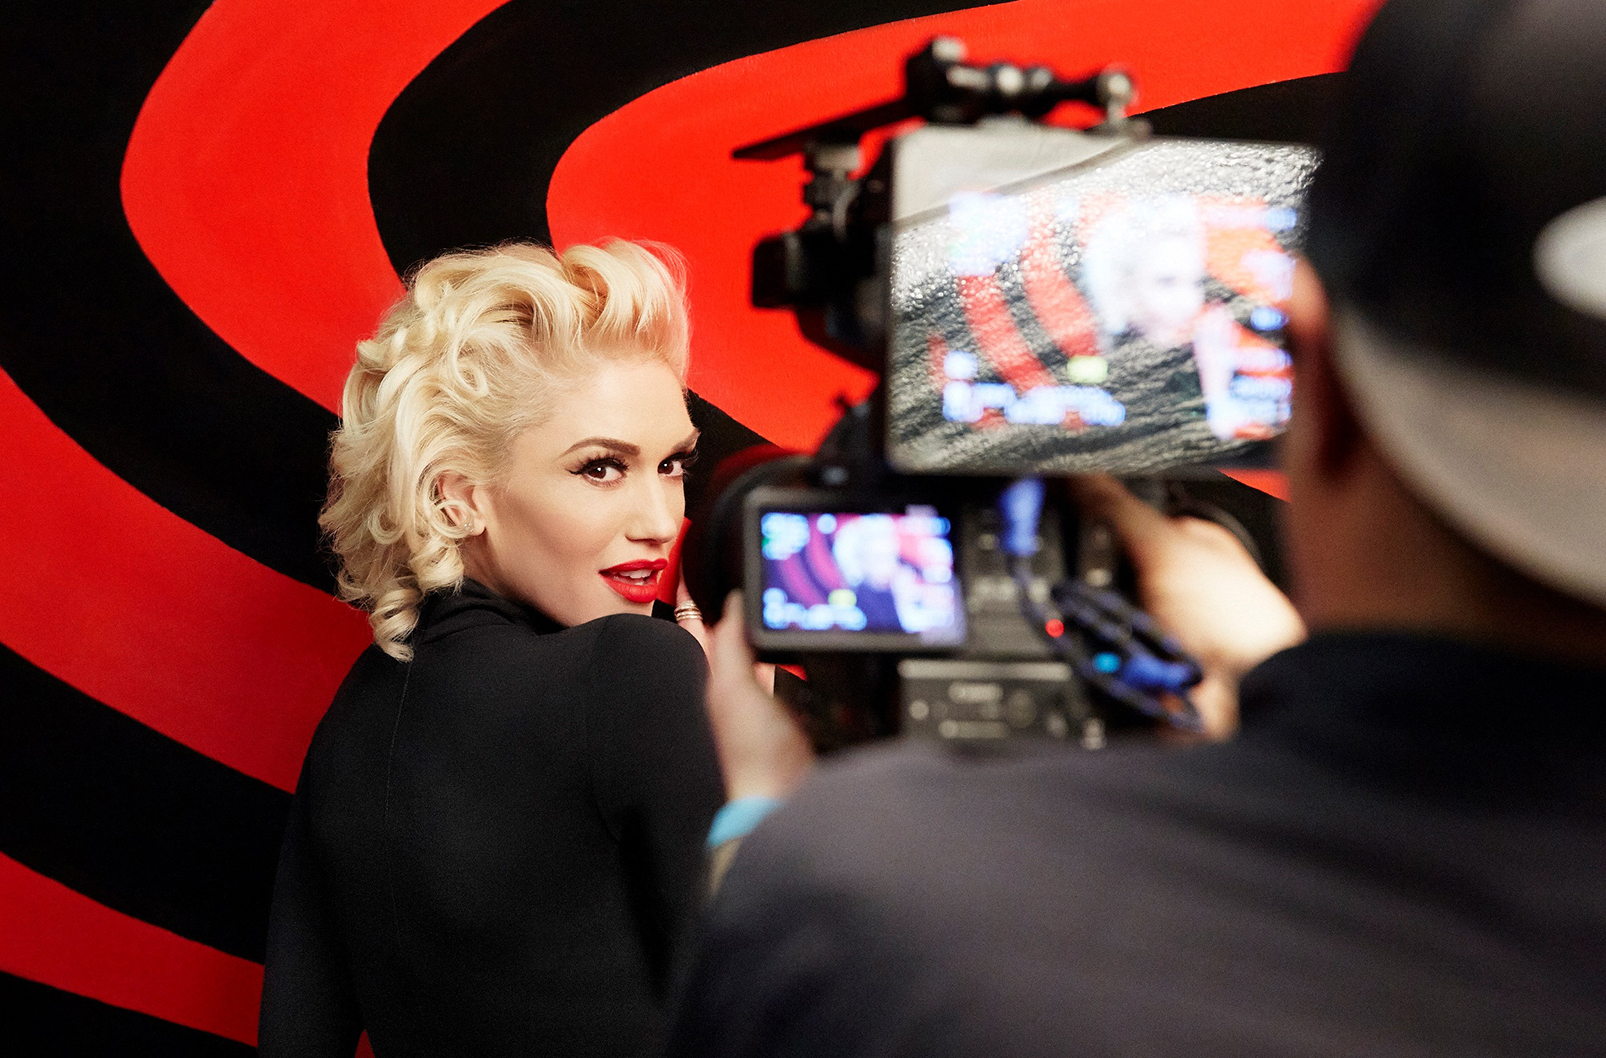 Target Bets Big On 4-Minute Grammys Ad With Gwen Stefani